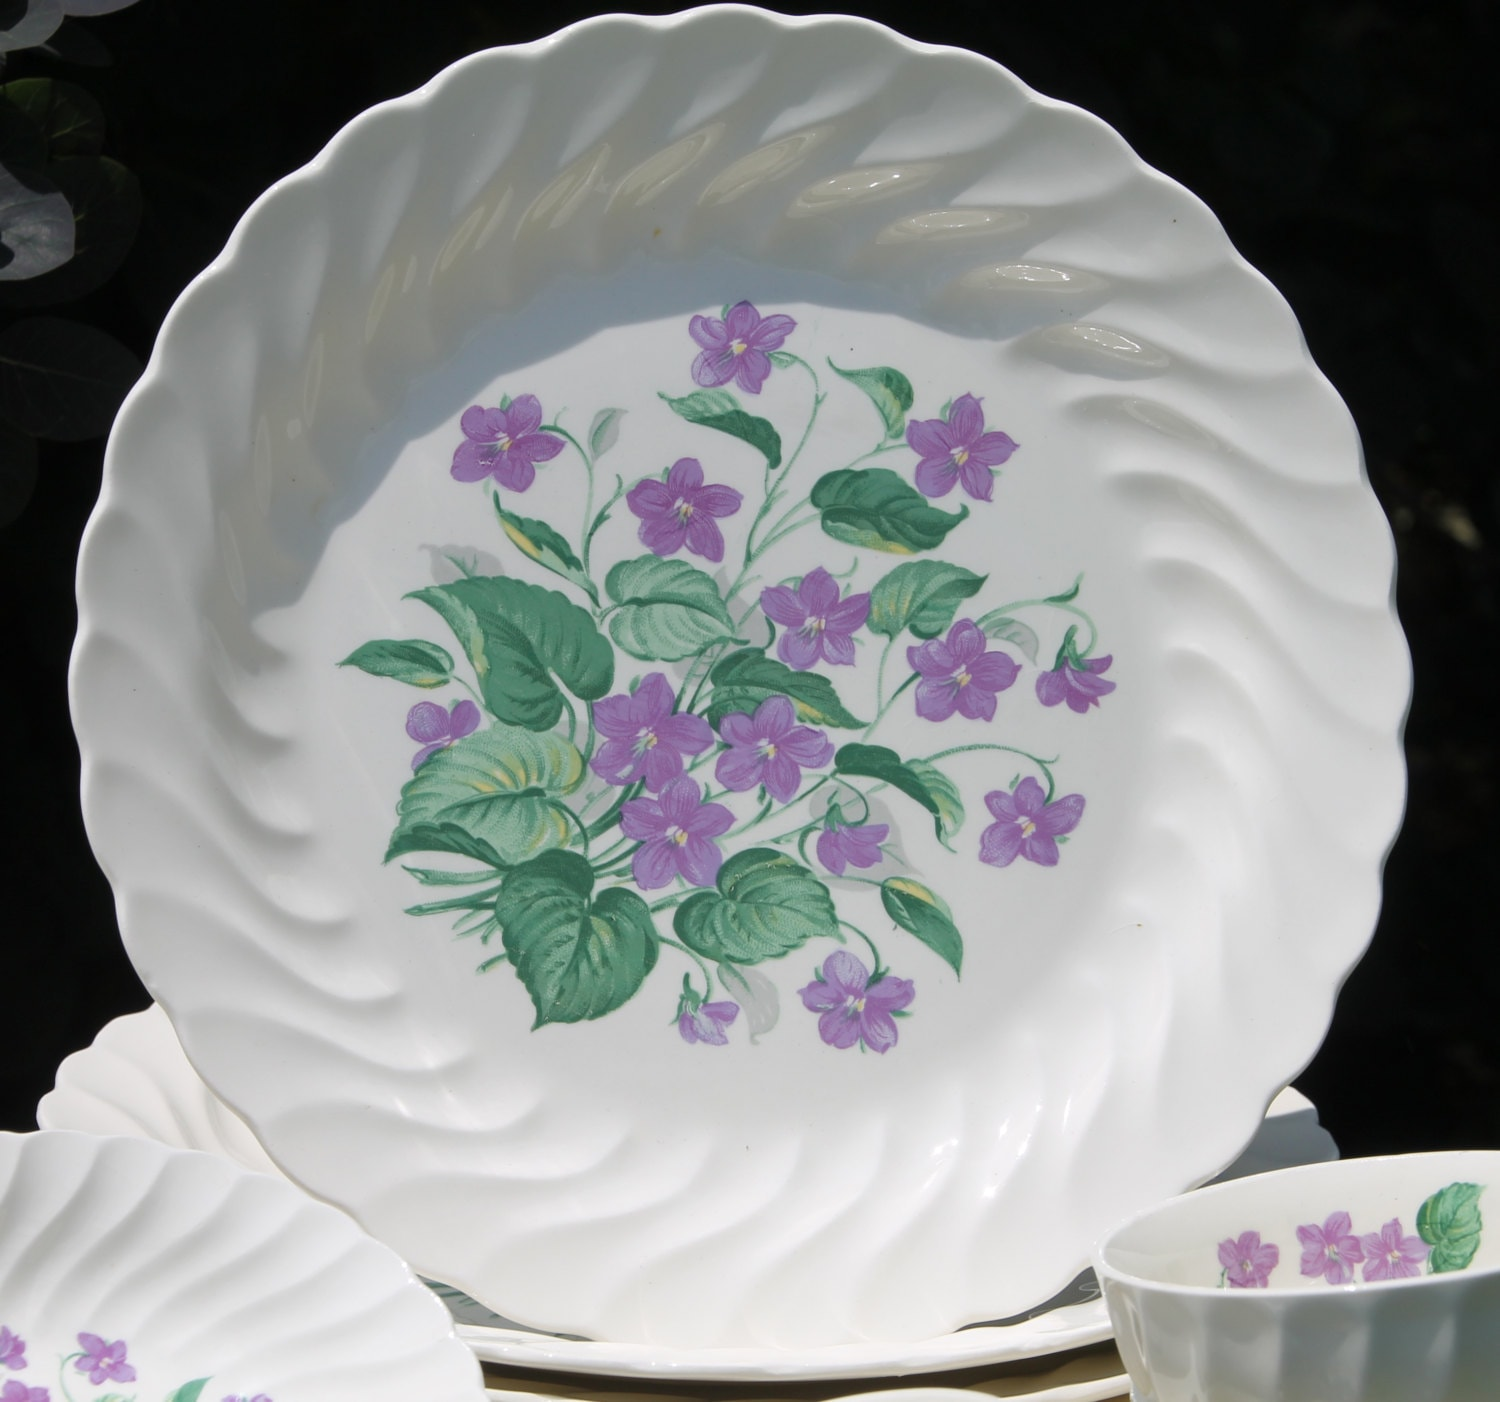 gallery photo gallery photo ... & Vintage Royal Violet Dinnerware Set by Royal China USA with Delicate ...